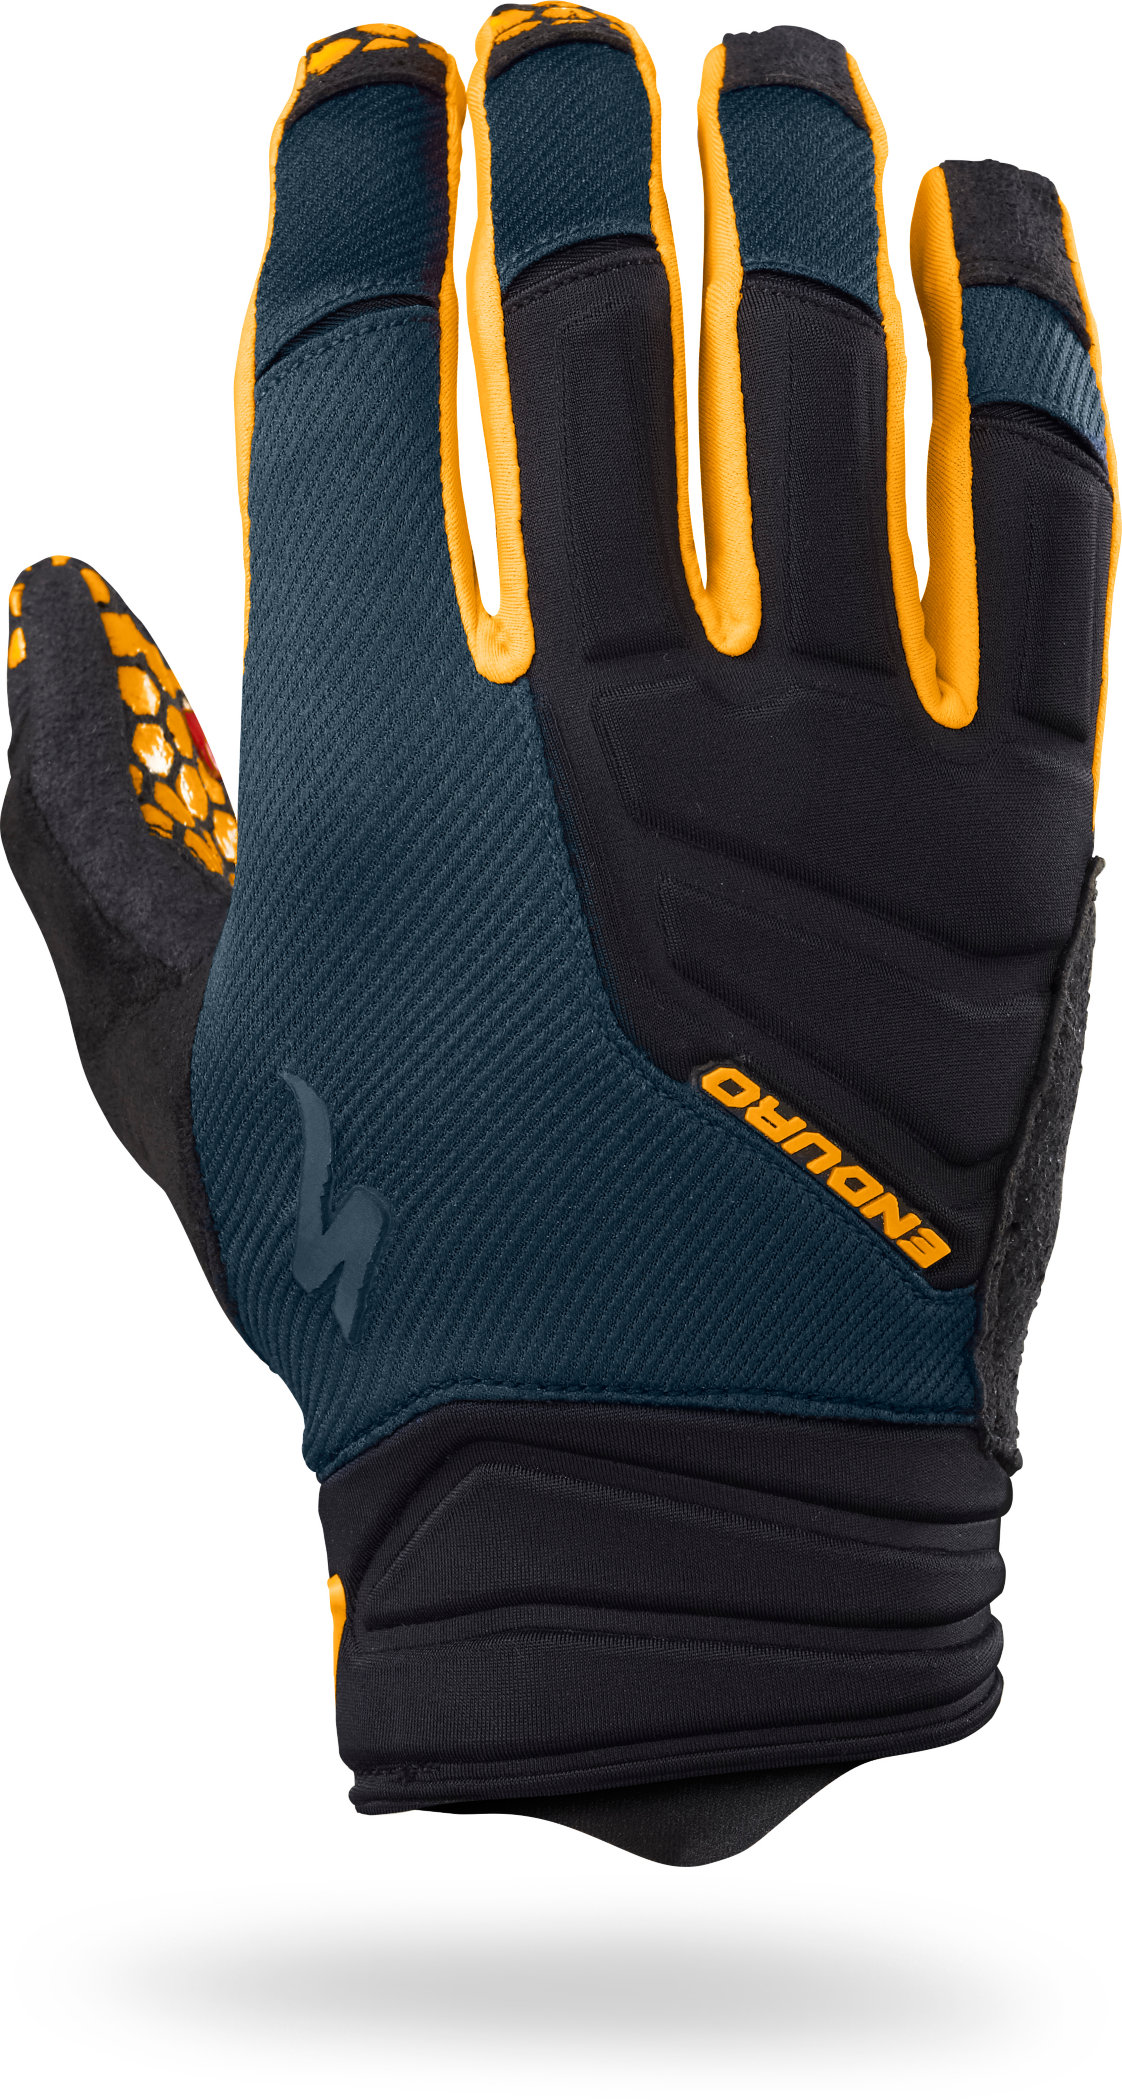 SPECIALIZED ENDURO GLOVE LF NVY/GLDORG XL - Alpha Bikes